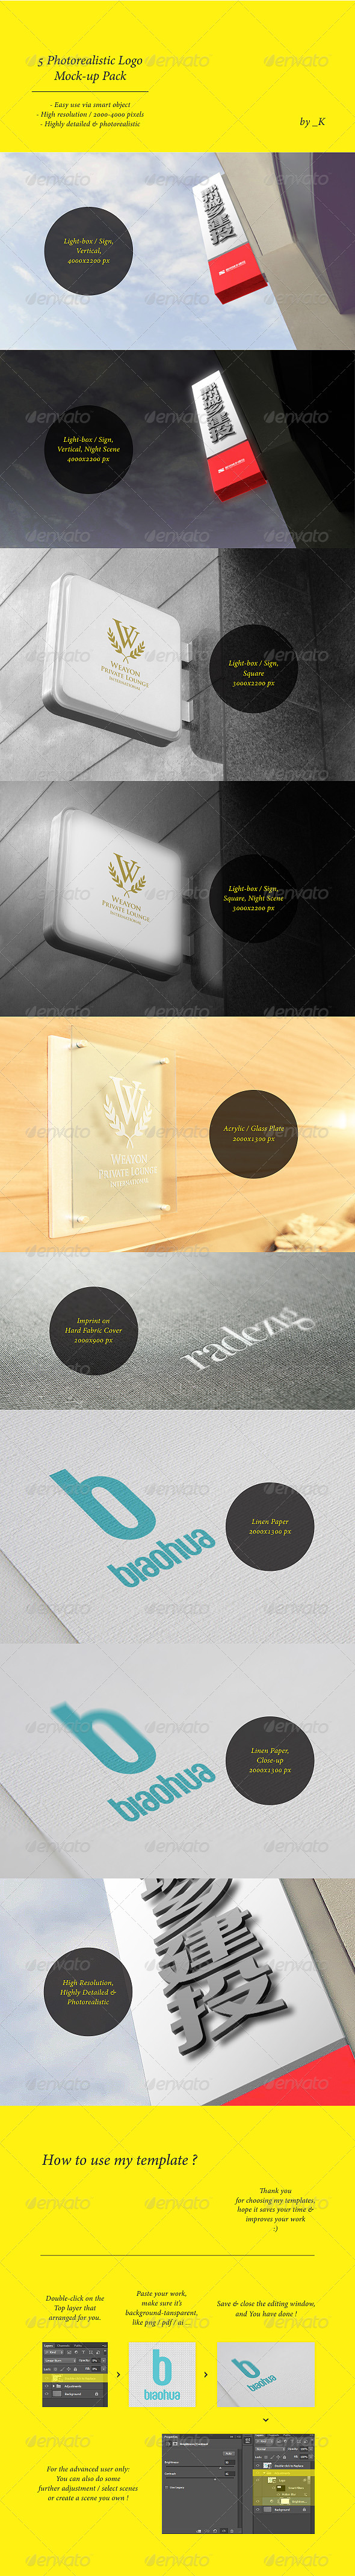 5 Unique Photorealistic Logo Display Mock-up Pack - Logo Product Mock-Ups